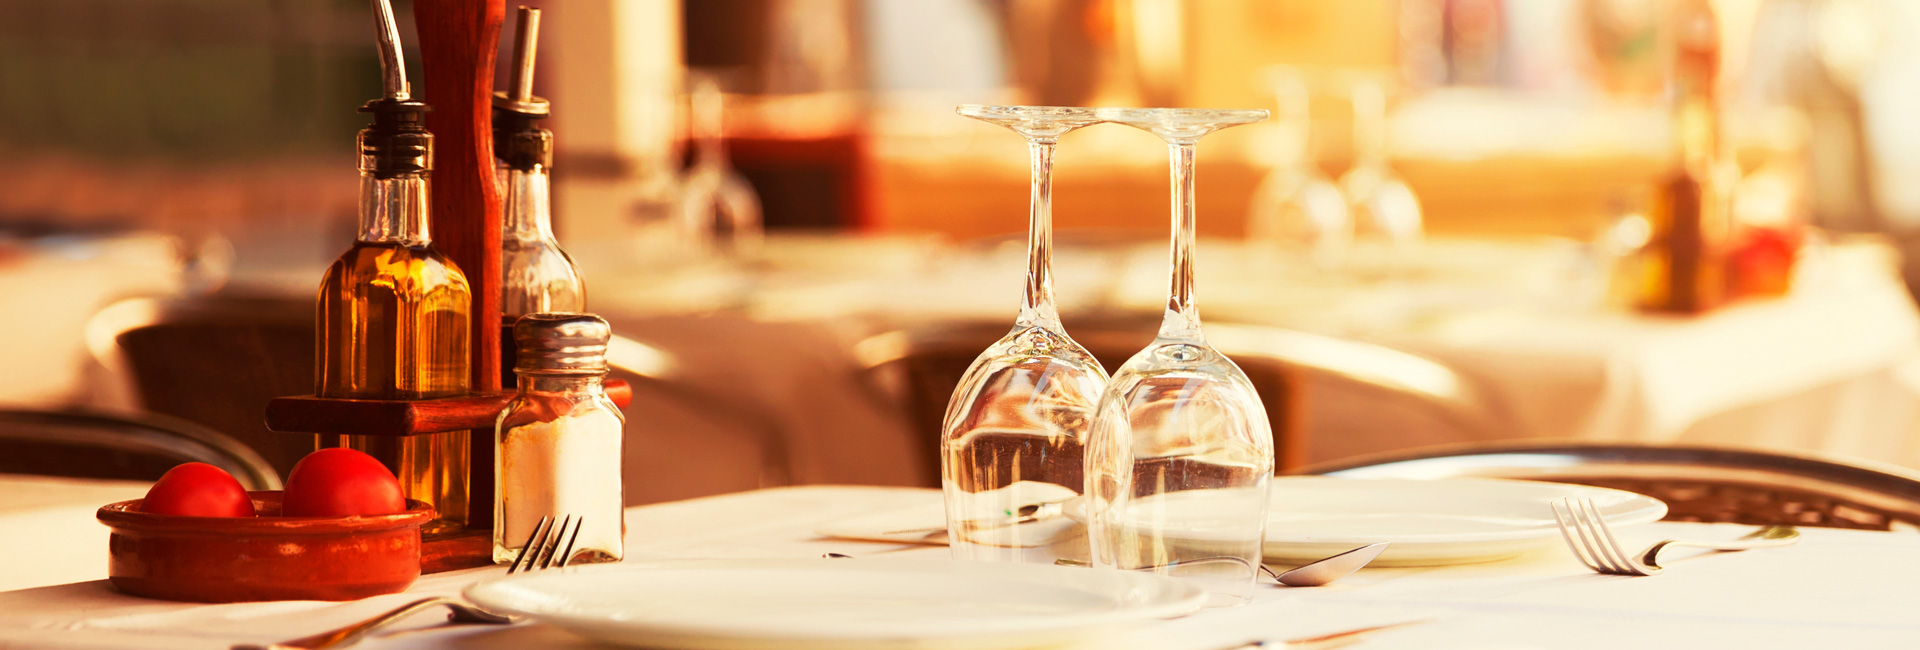 Incredible dining experiences